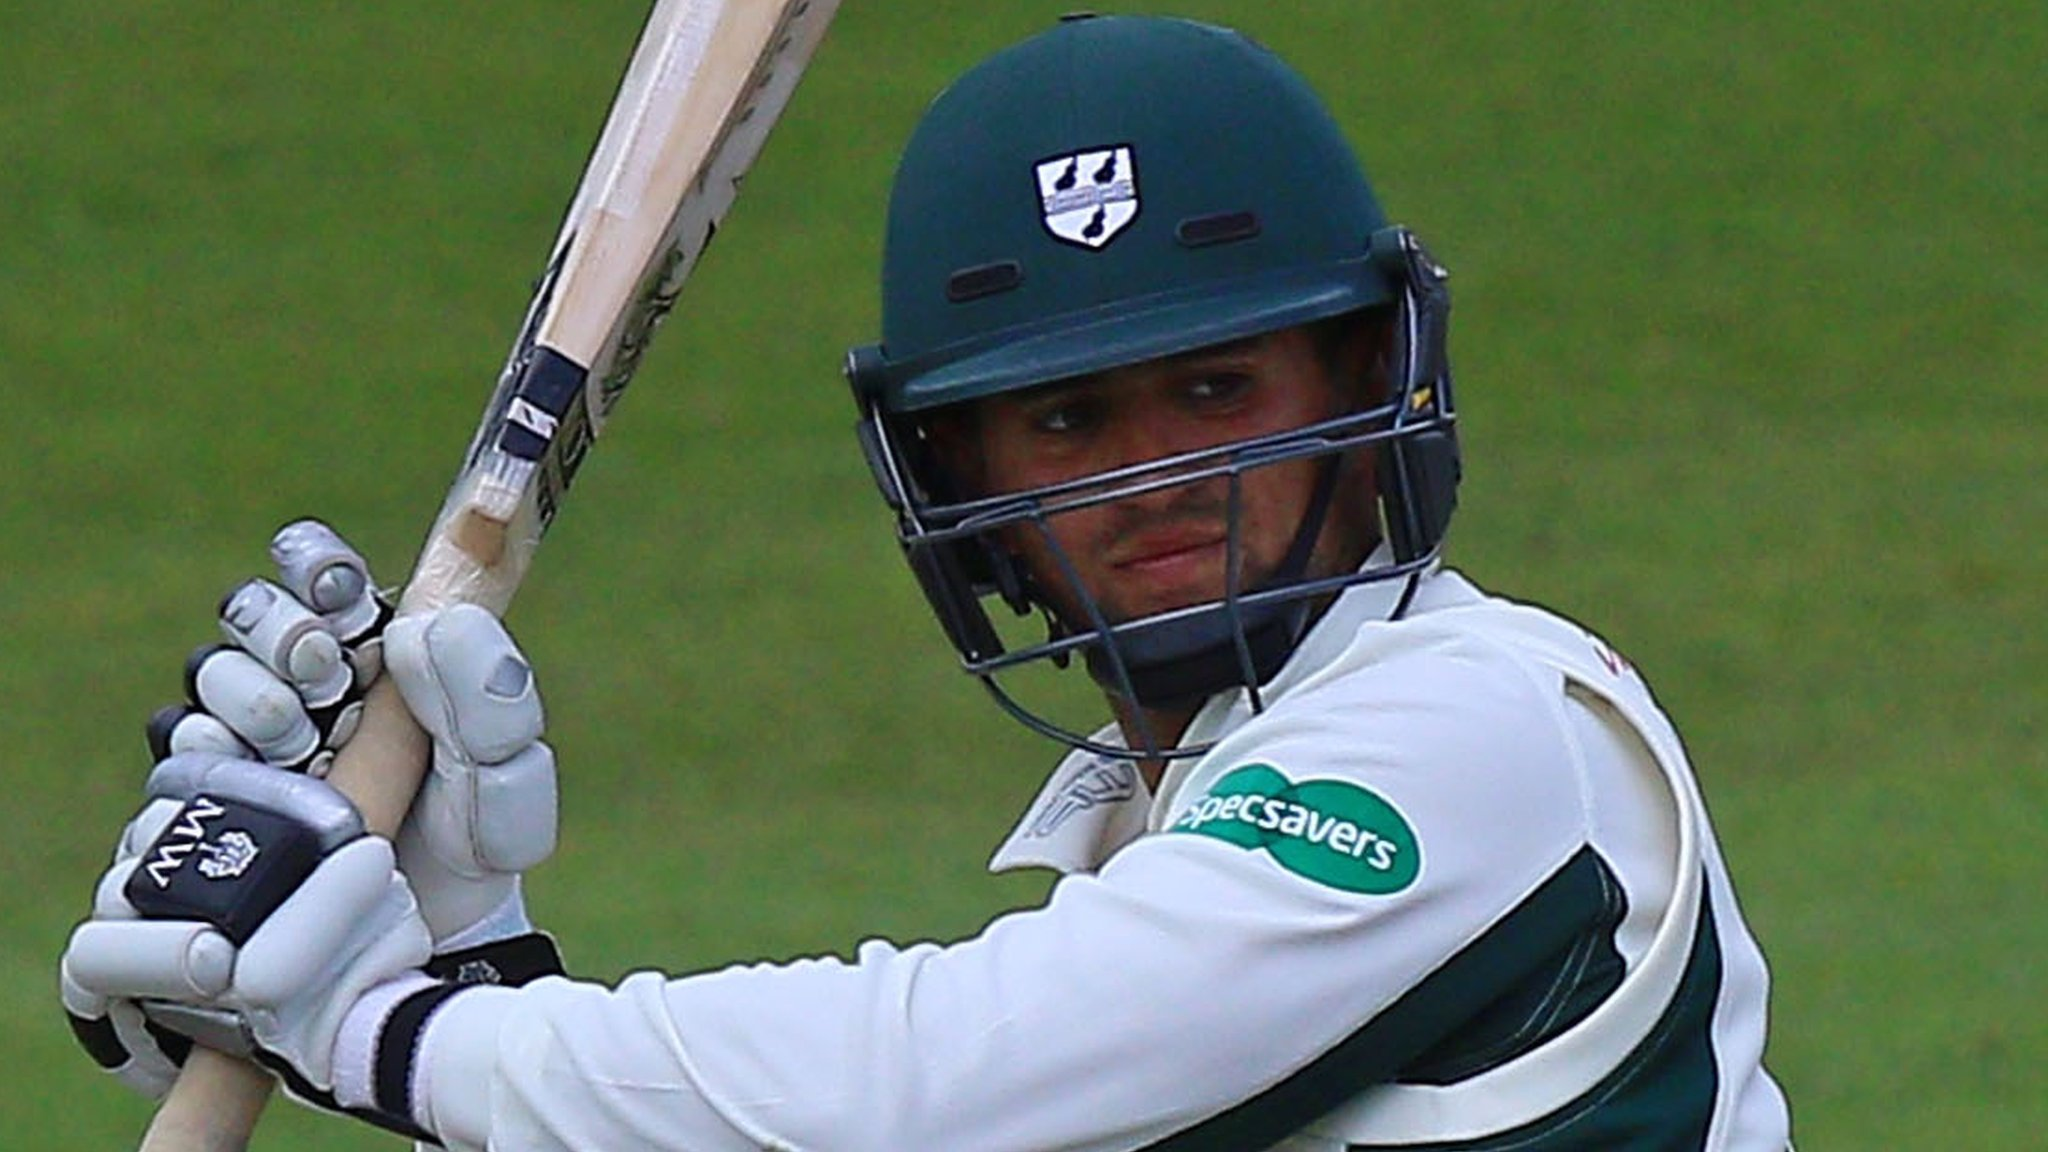 Worcestershire appoint D'Oliveira as captain